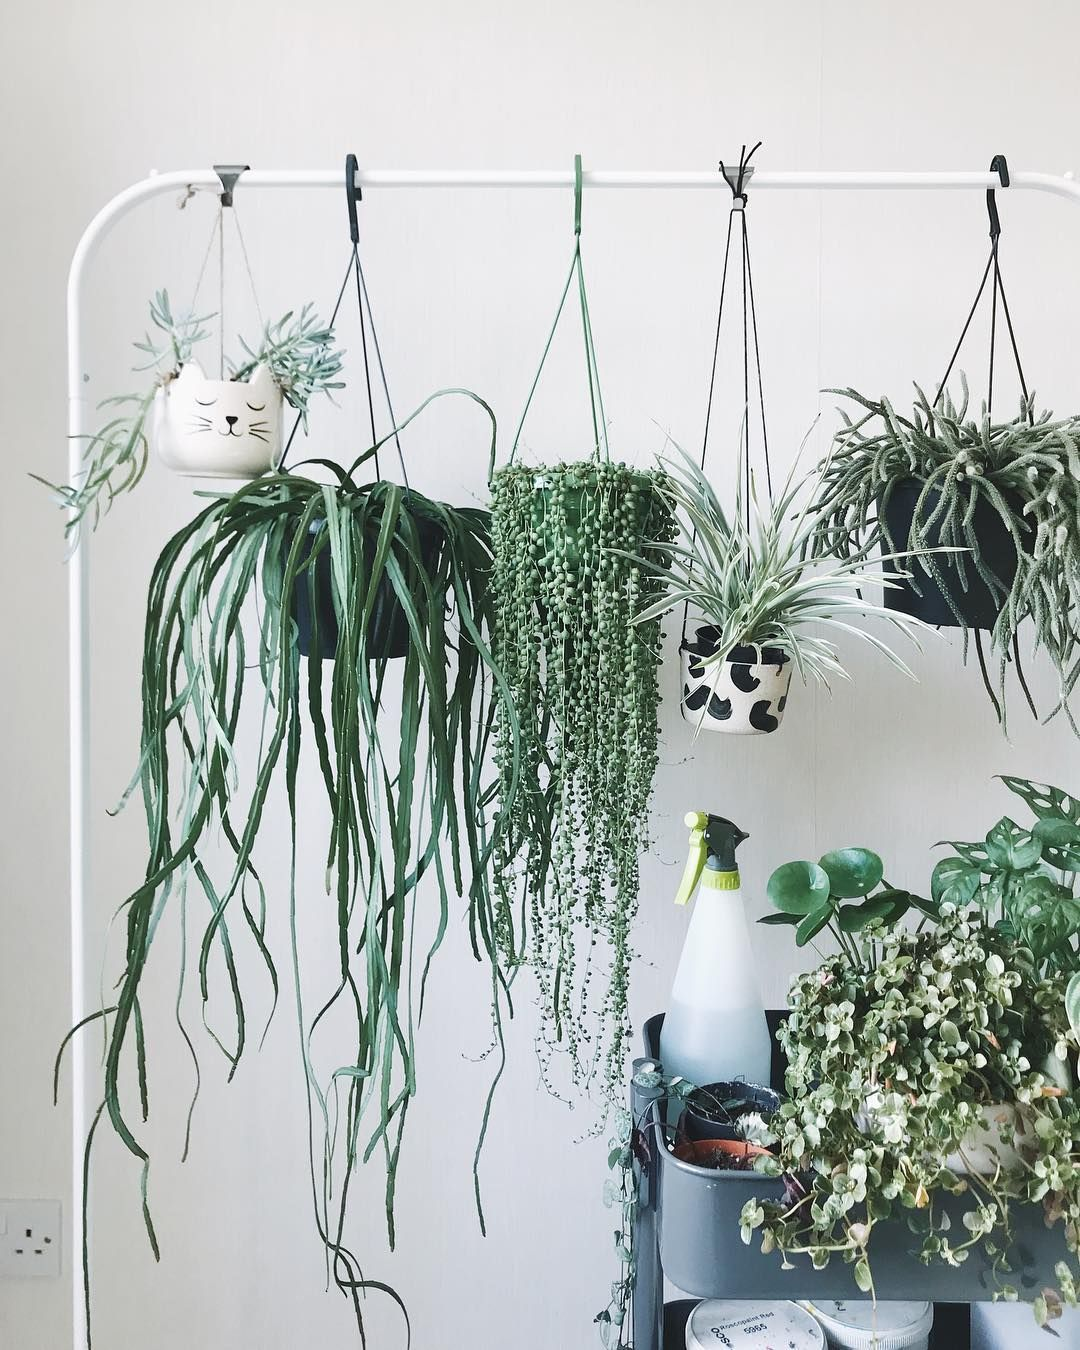 A Temporary Solution To Hold My Hanging Plants Until I Figure Out